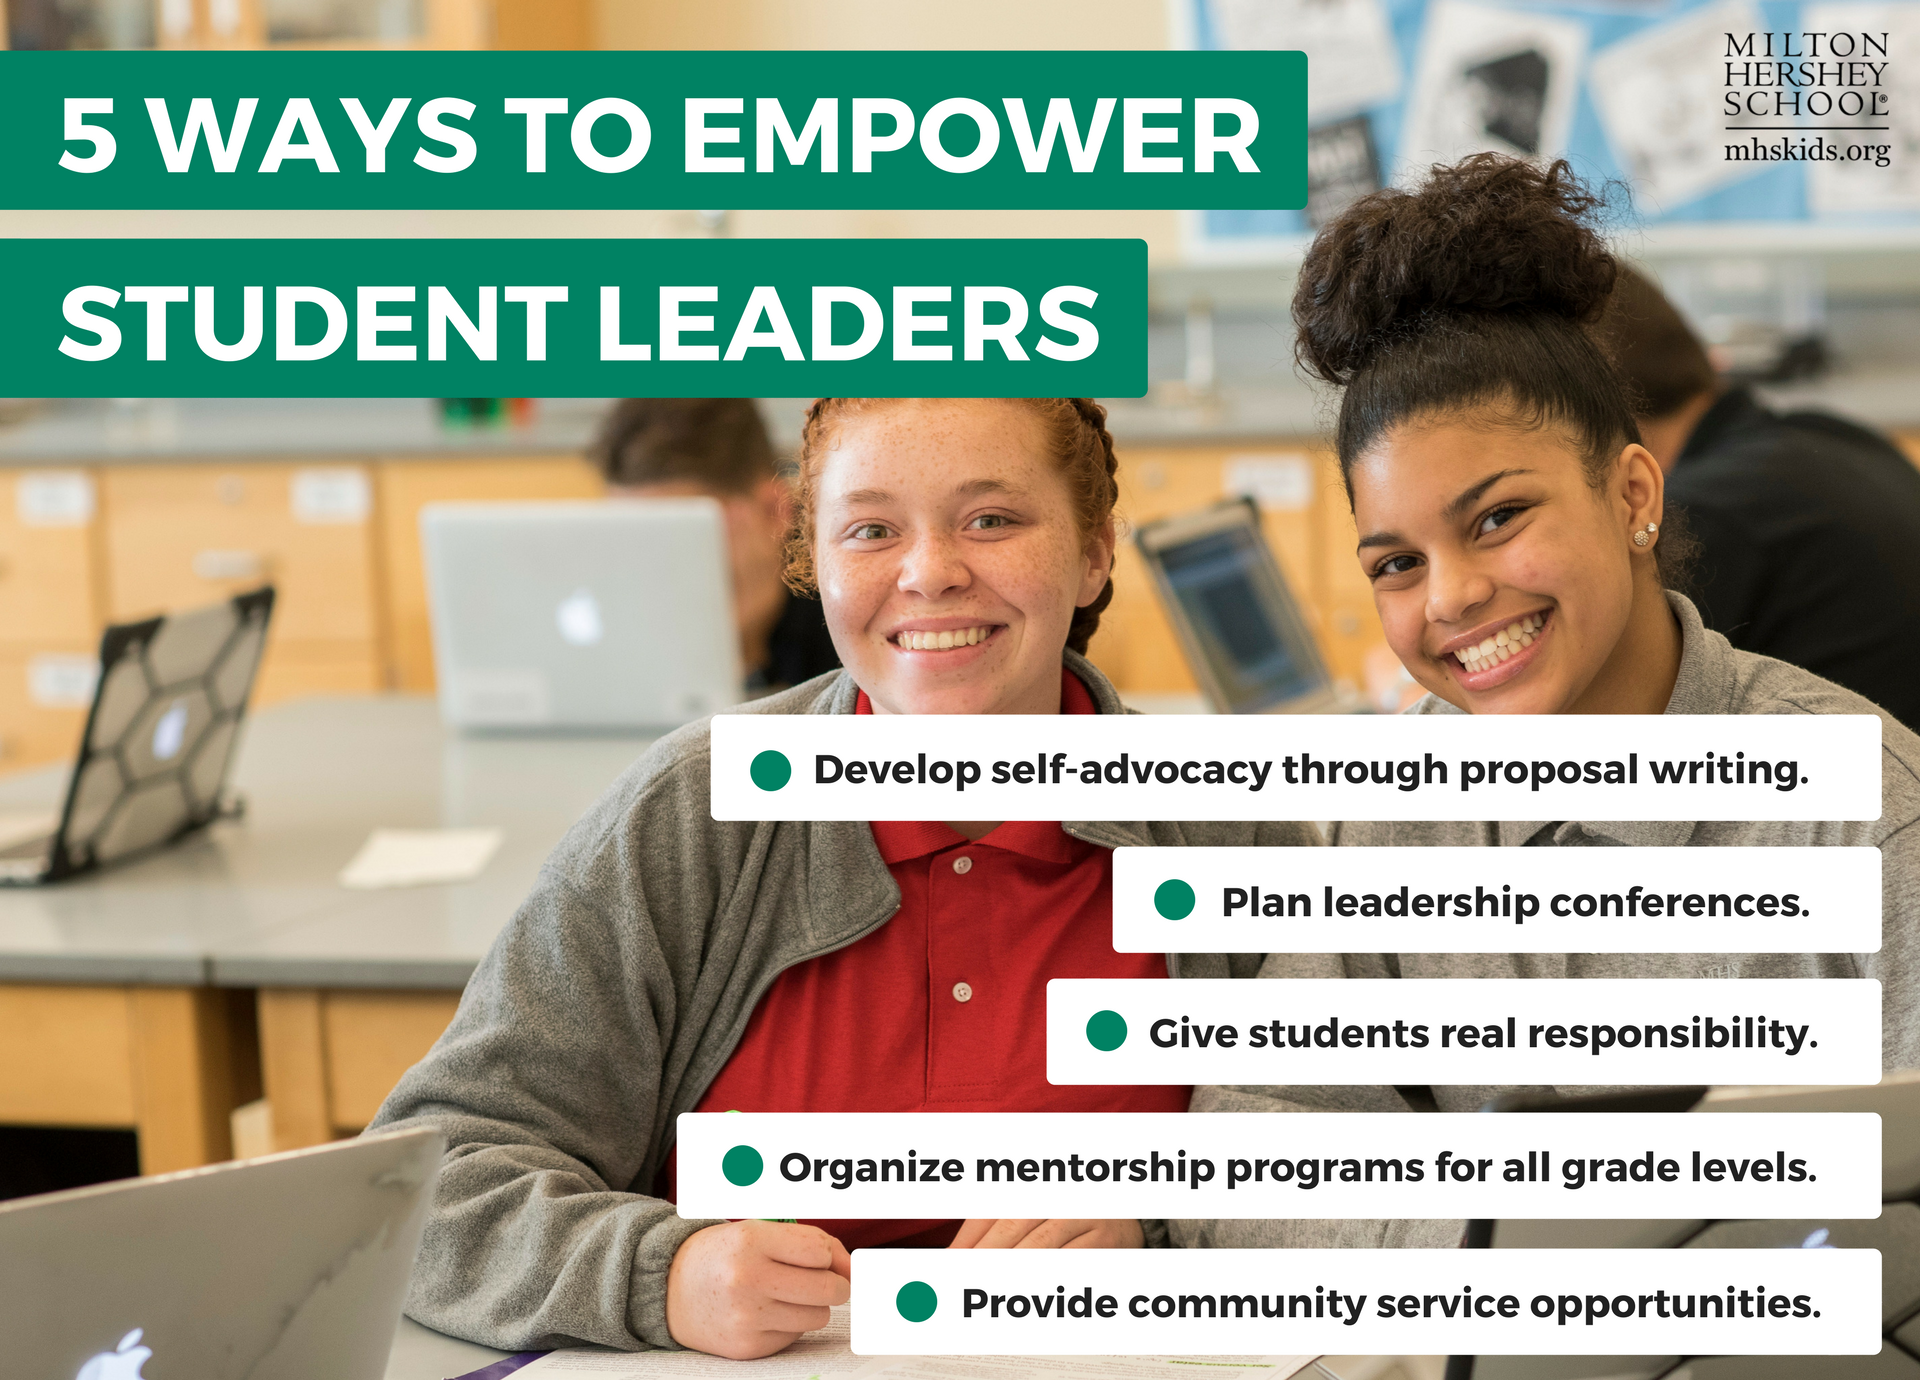 Through cooperative learning activities, conferences, and service learning projects, educators can empower students of all ages to serve as student leaders.